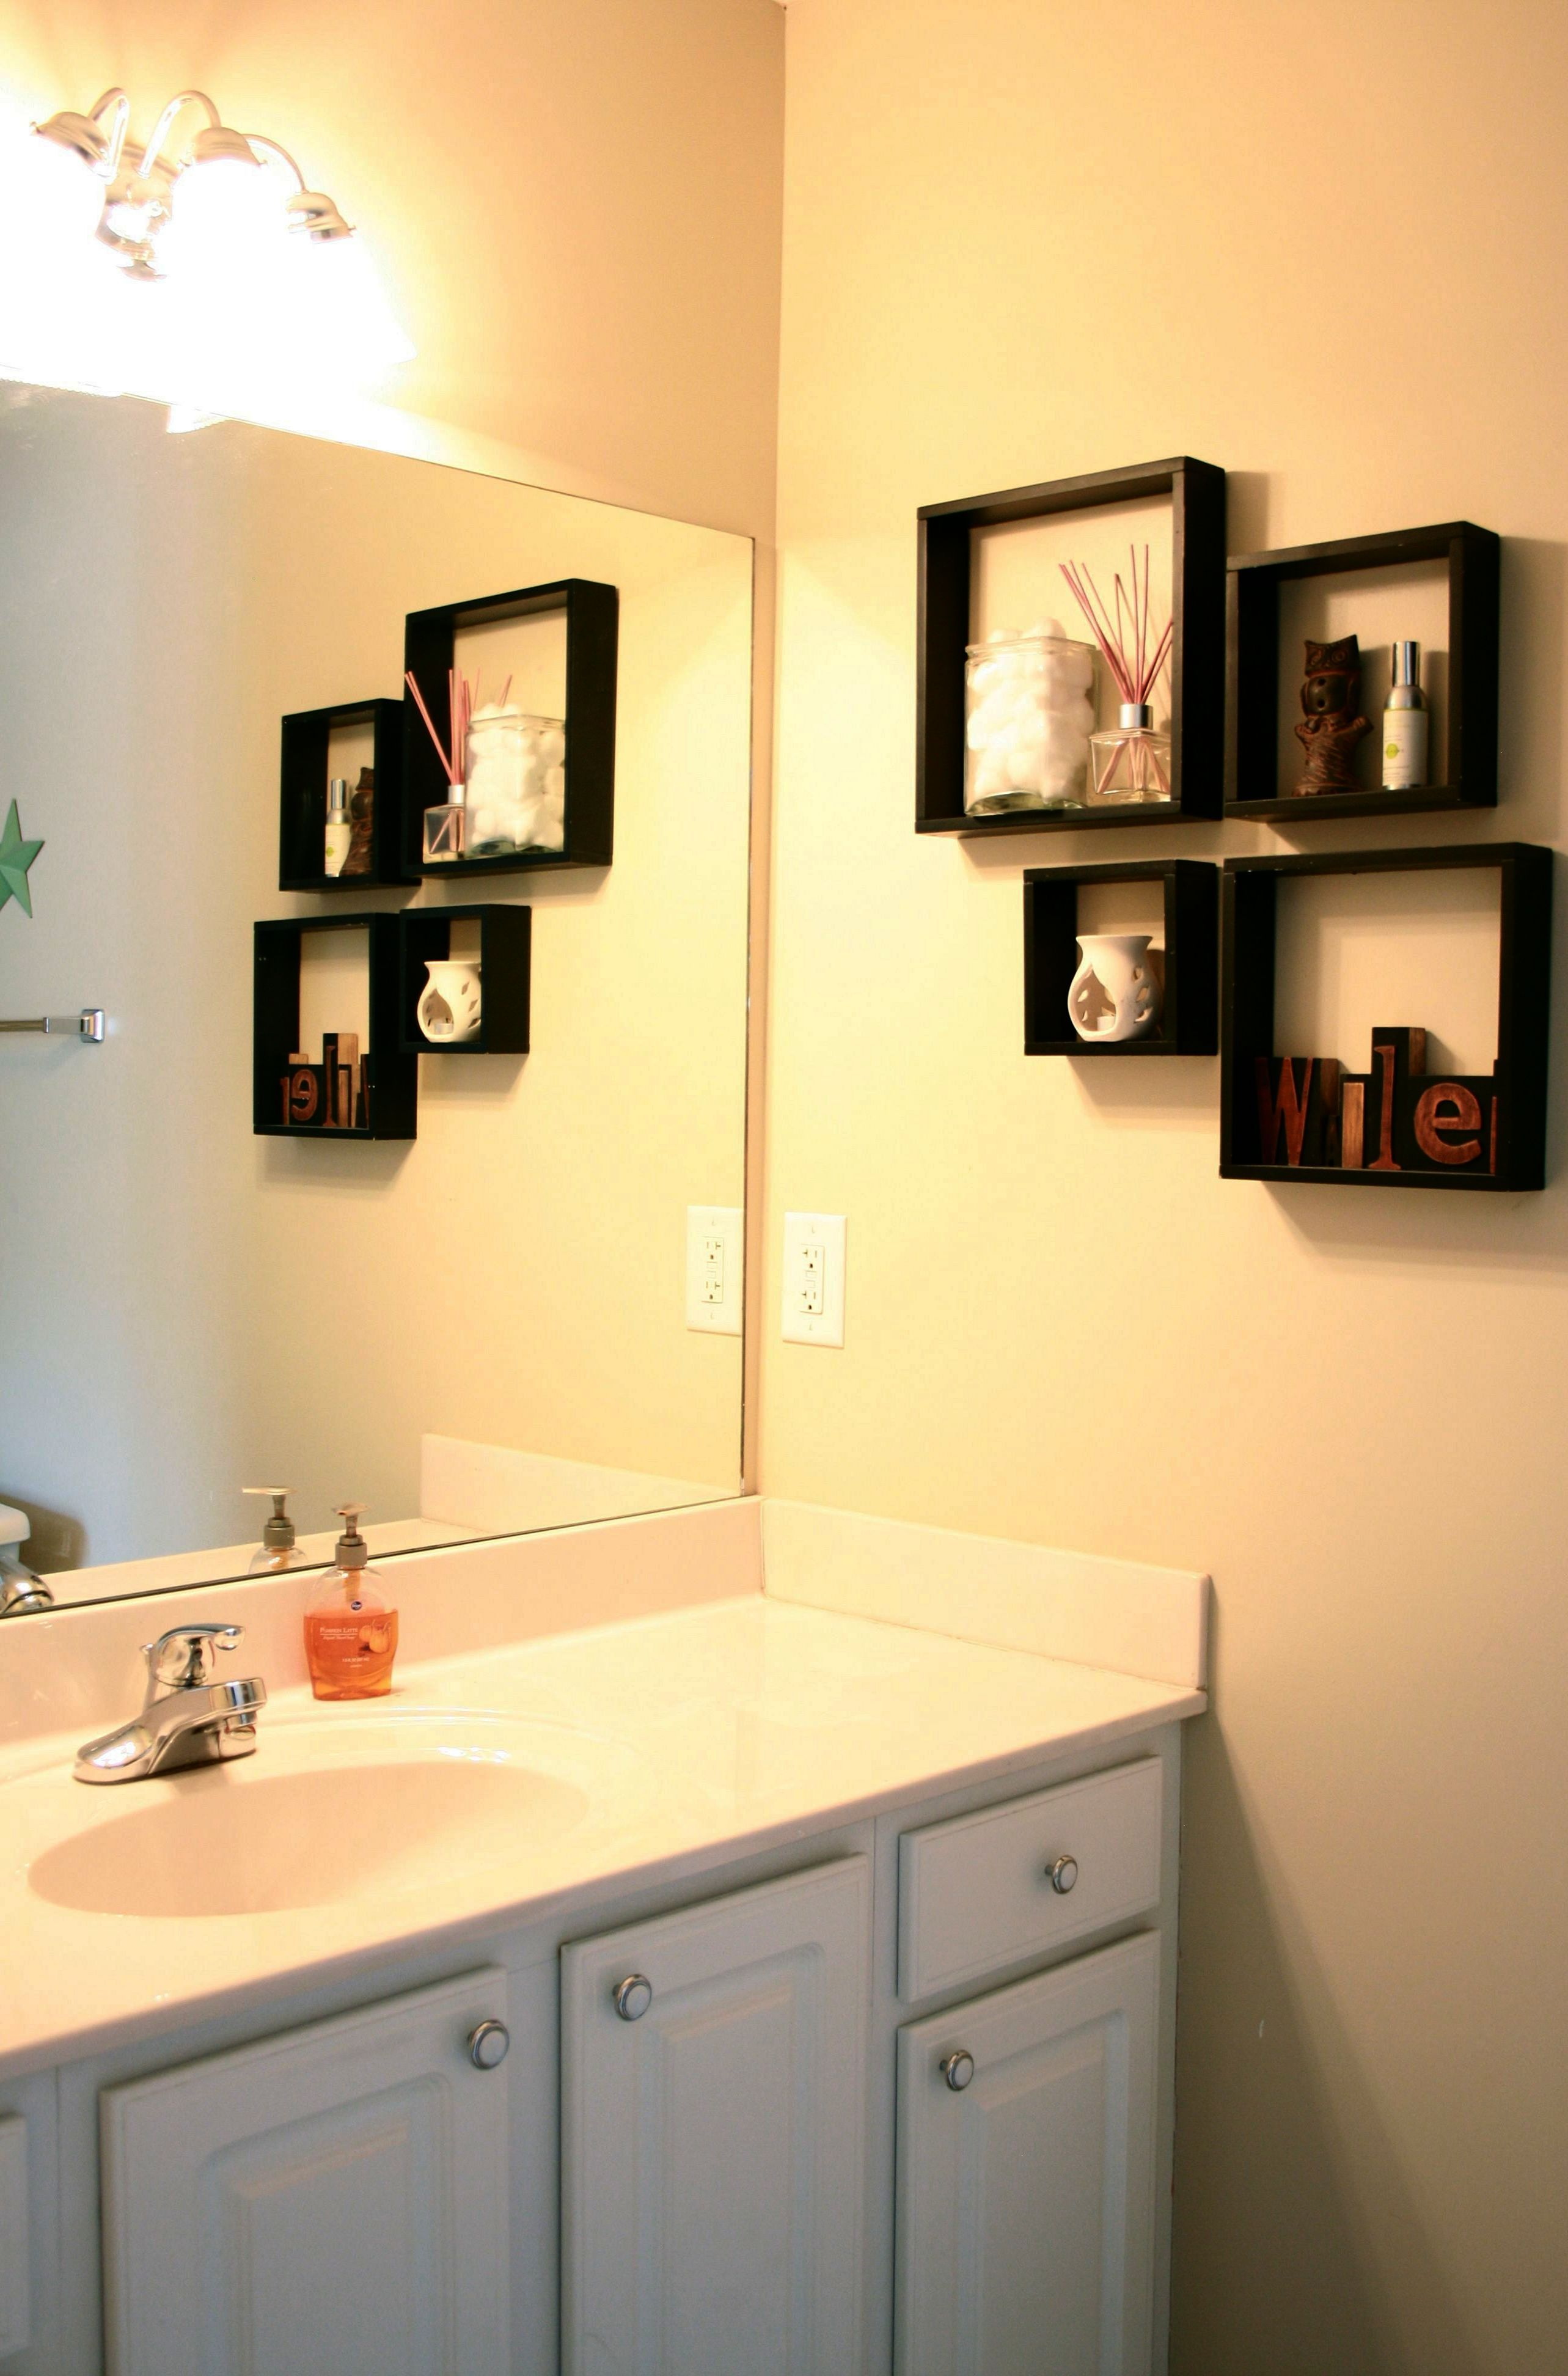 a how electrical switch off safely photo to i discreetly tv the pictures wall and of power bathroom can questions install